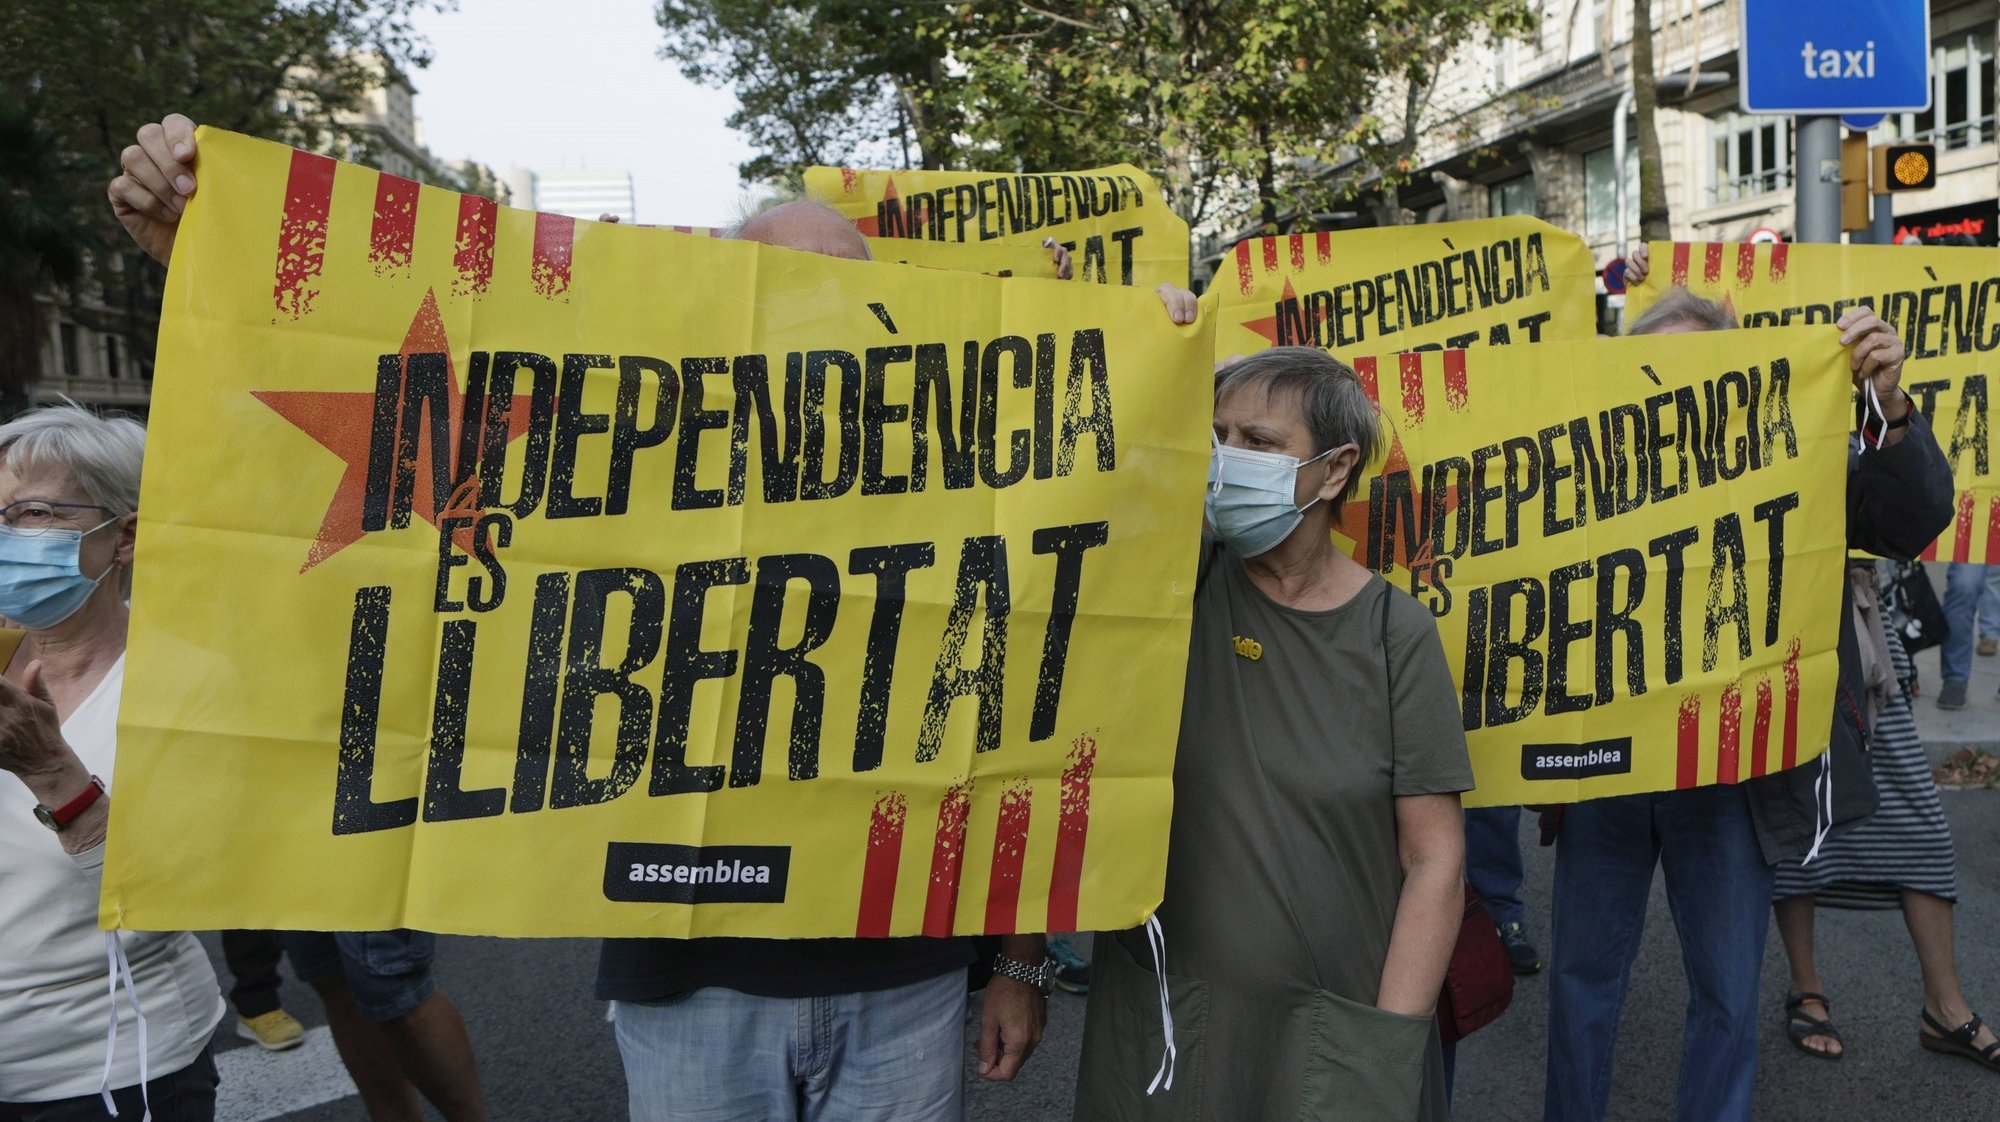 epa09484802 Demonstrators hold a banner reading in Catalan language 'Independence is Freedom' as several dozens people rally in front of Italian Consulate to protest against the arrest of Catalan pro-independent leader and former regional President Carles Puigdemont in the Italian island of Sardinia 23 September evening, in Barcelona, Spain, 24 September 2021. Puigdemont was arrested under a international warrant asked by Spanish authorities, four years after he run away from judicial authorities amid the inquiry of the illegal referendum held in Catalonia in 2017.  EPA/QUIQE GARCIA